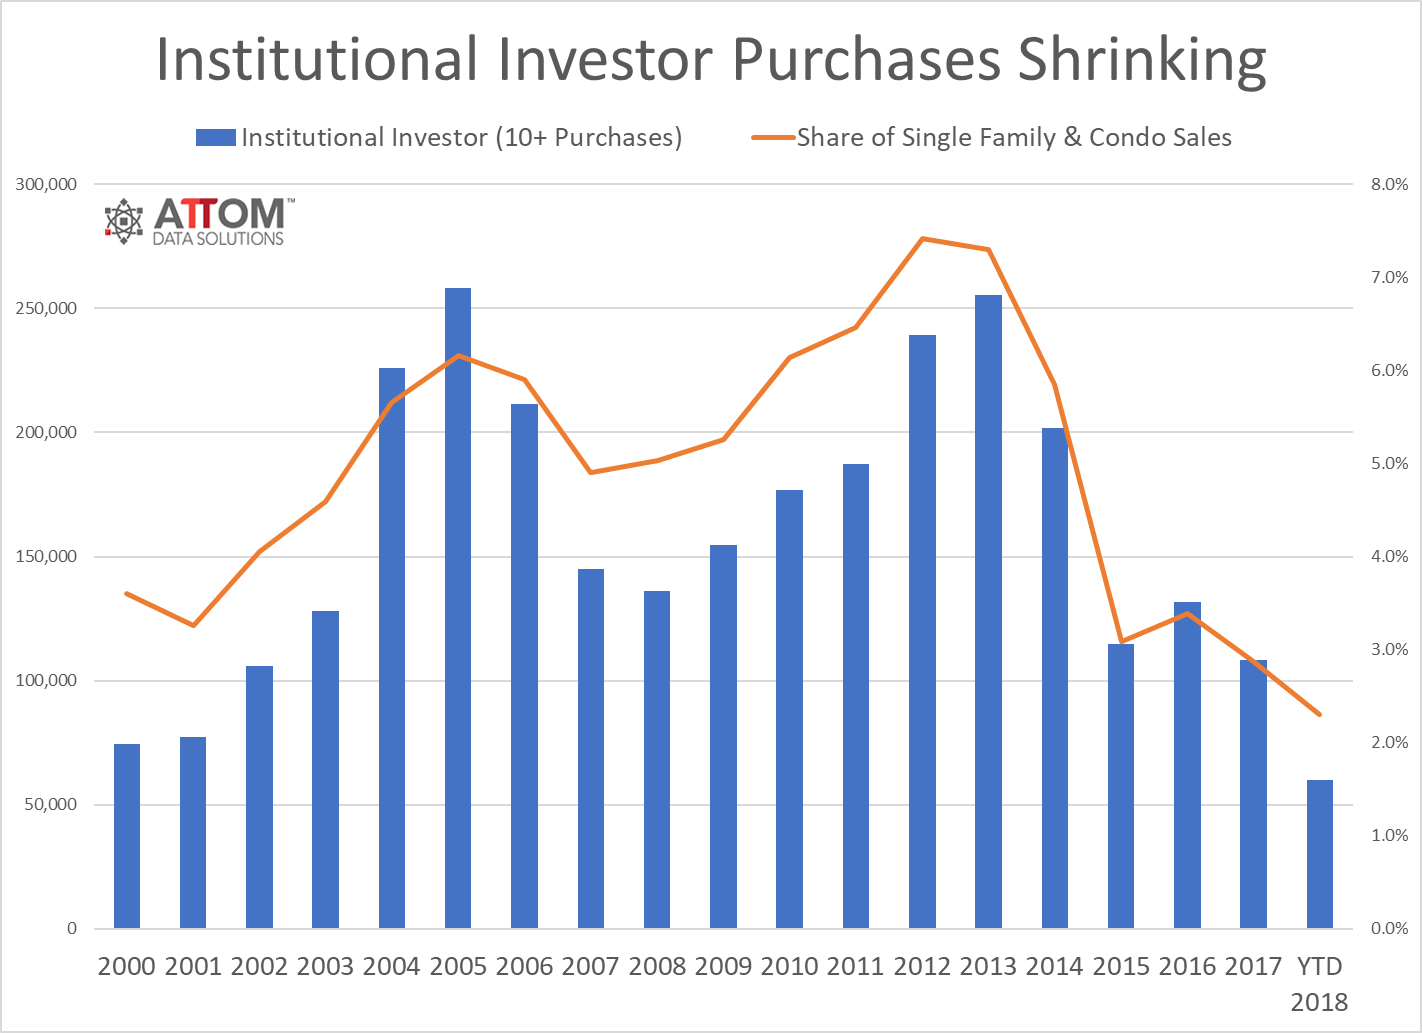 Institutional Investor Purchases marketshare